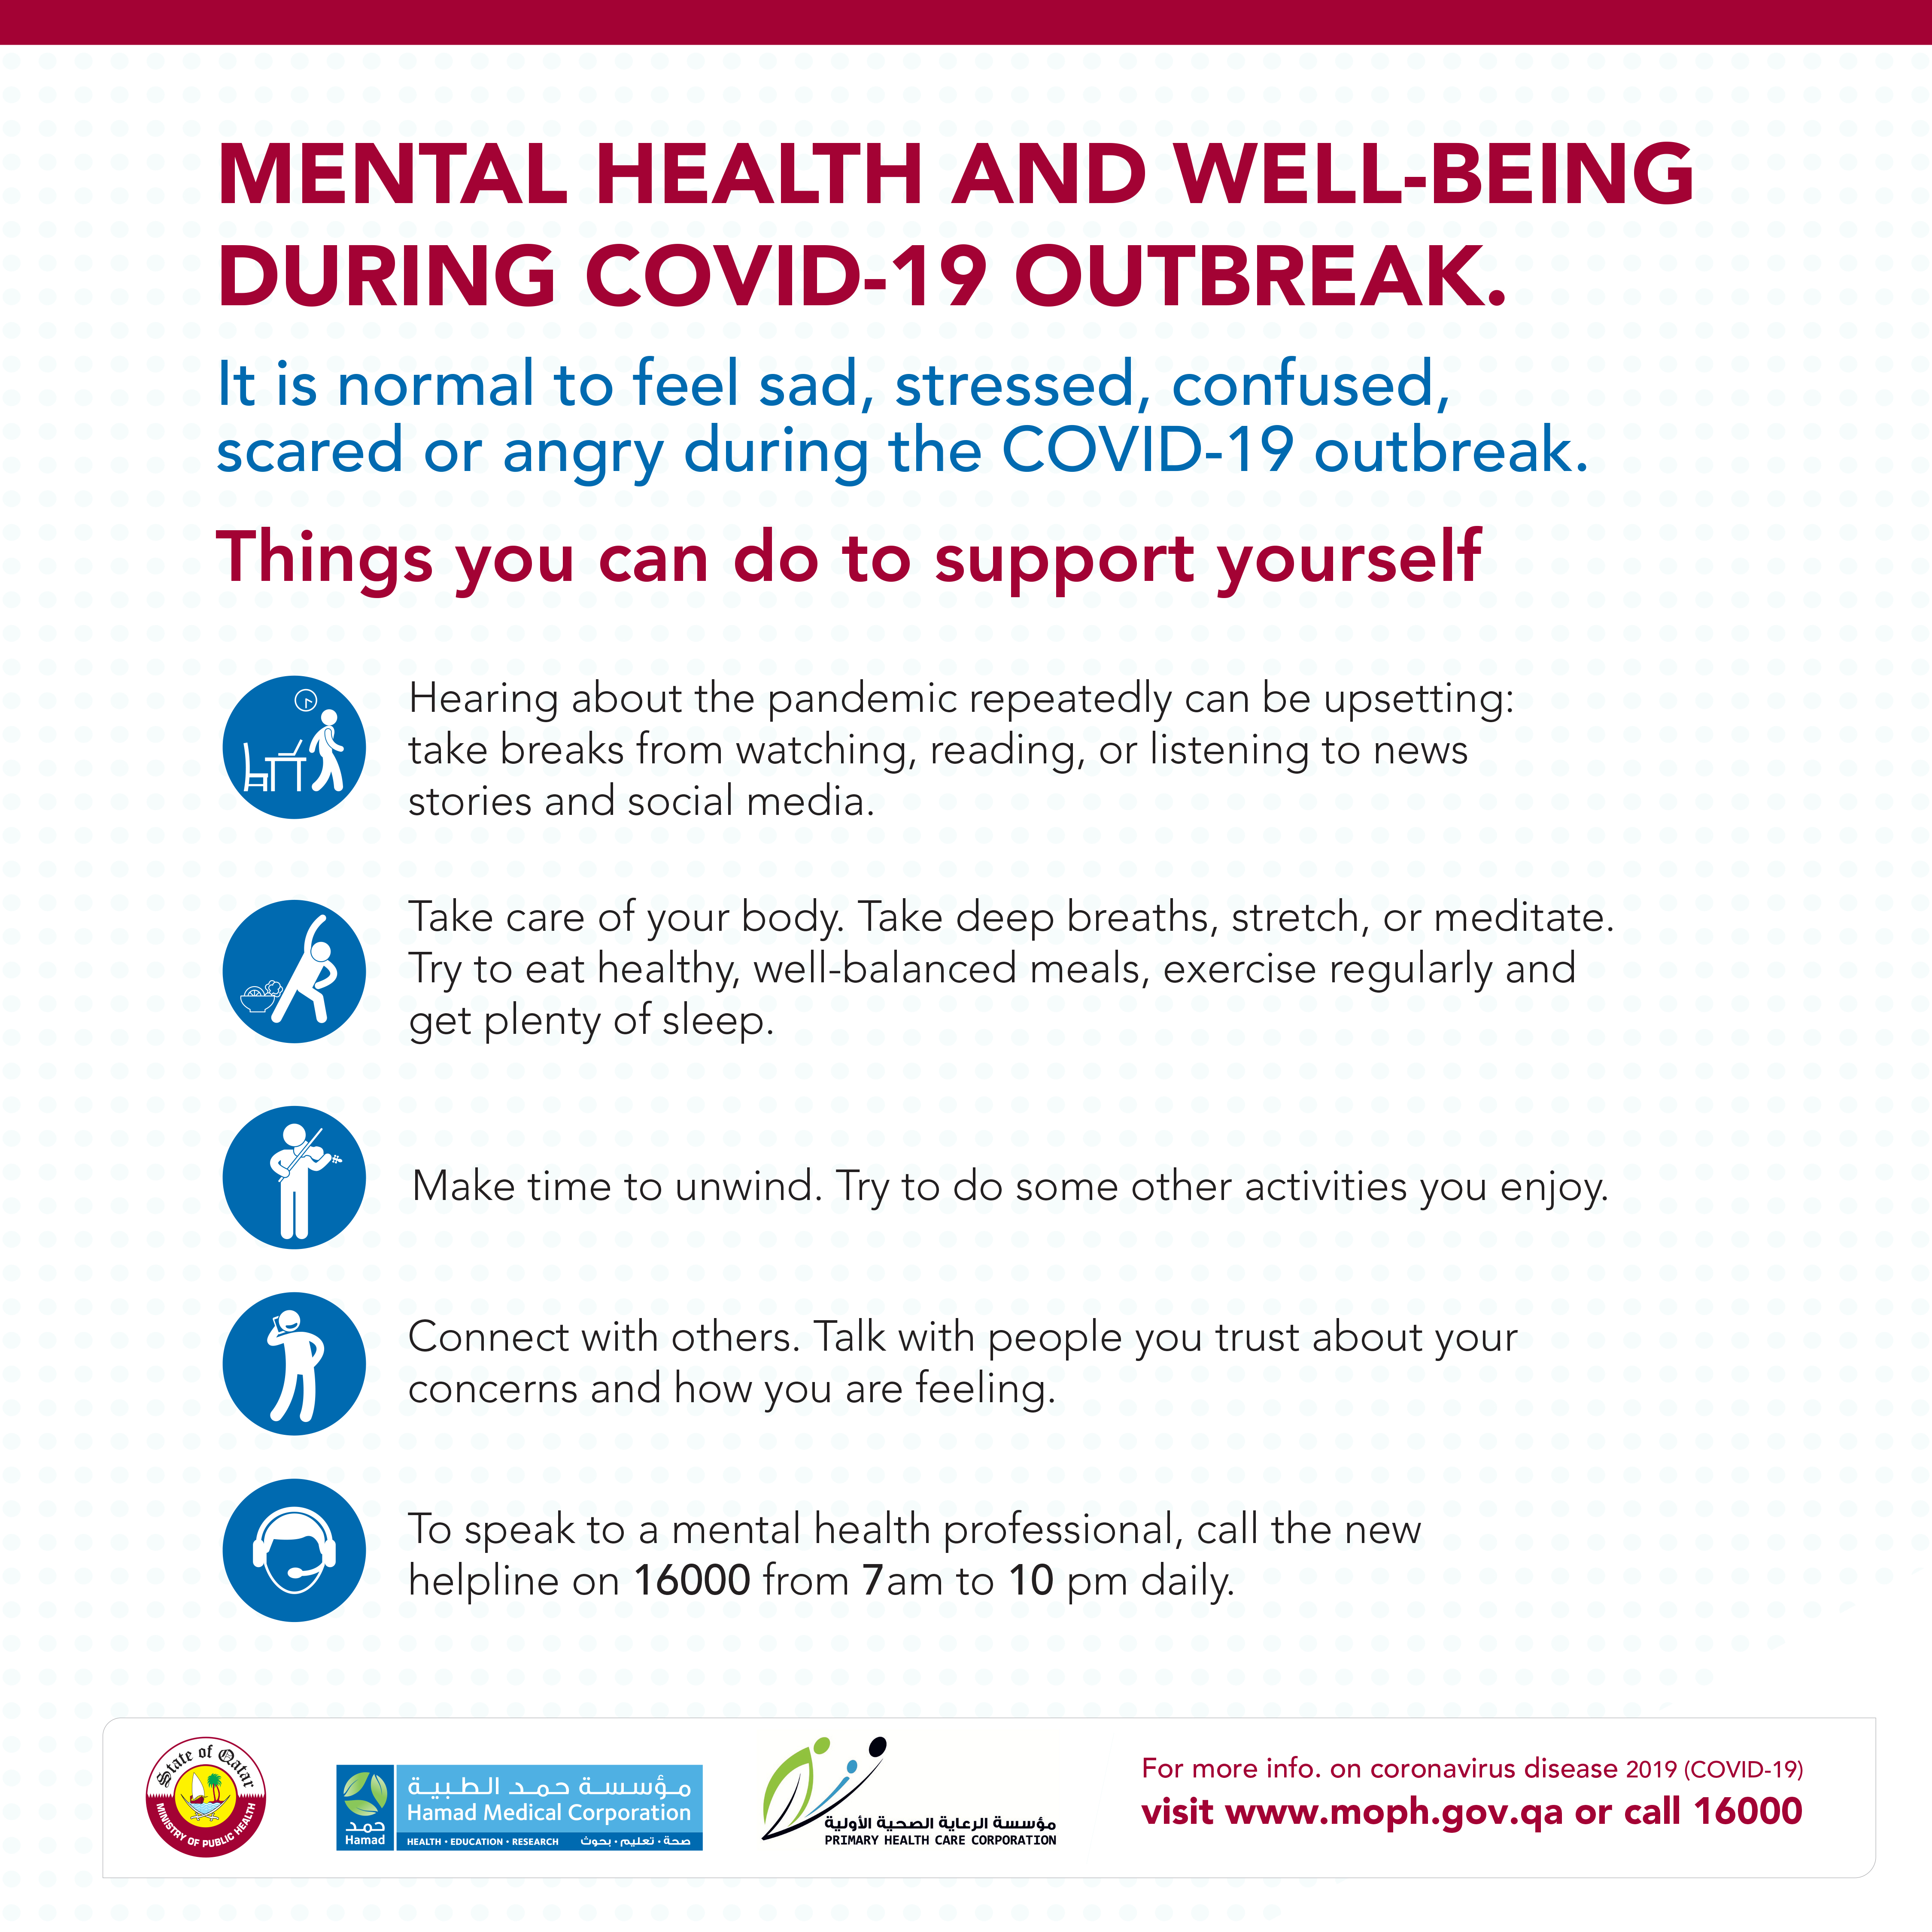 Mental health and well-being during COVID-19 outbreak